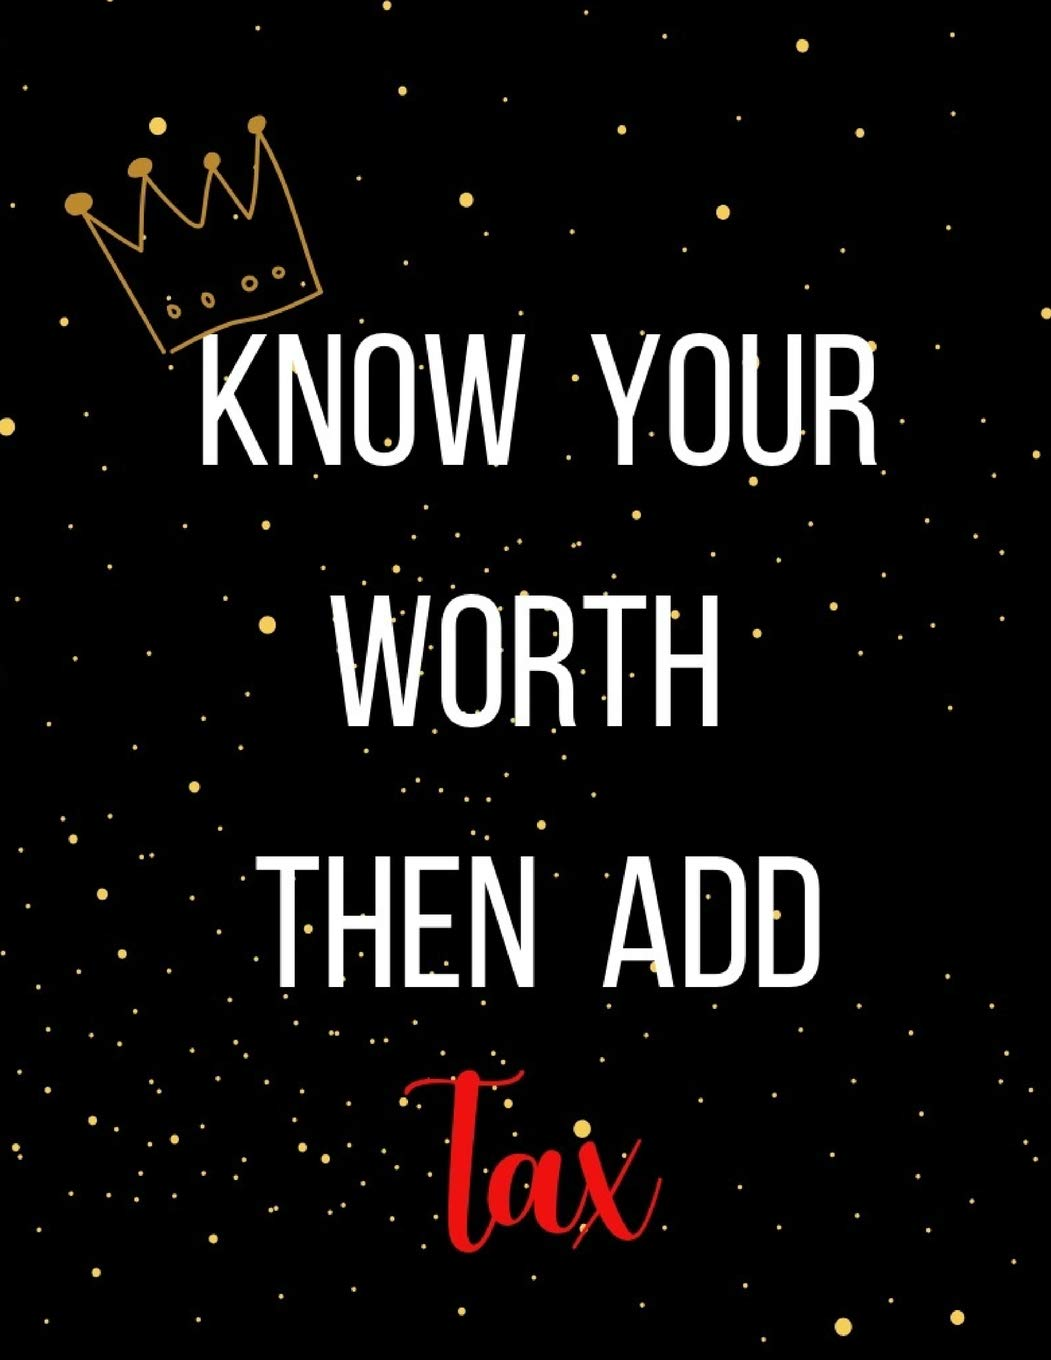 Amazon.com: Know your worth then add tax: 120pg 8.5x11 journal, Self-Esteem  journal - Gifts for teens know your worth (9781729601587): R&E Journaling:  Books